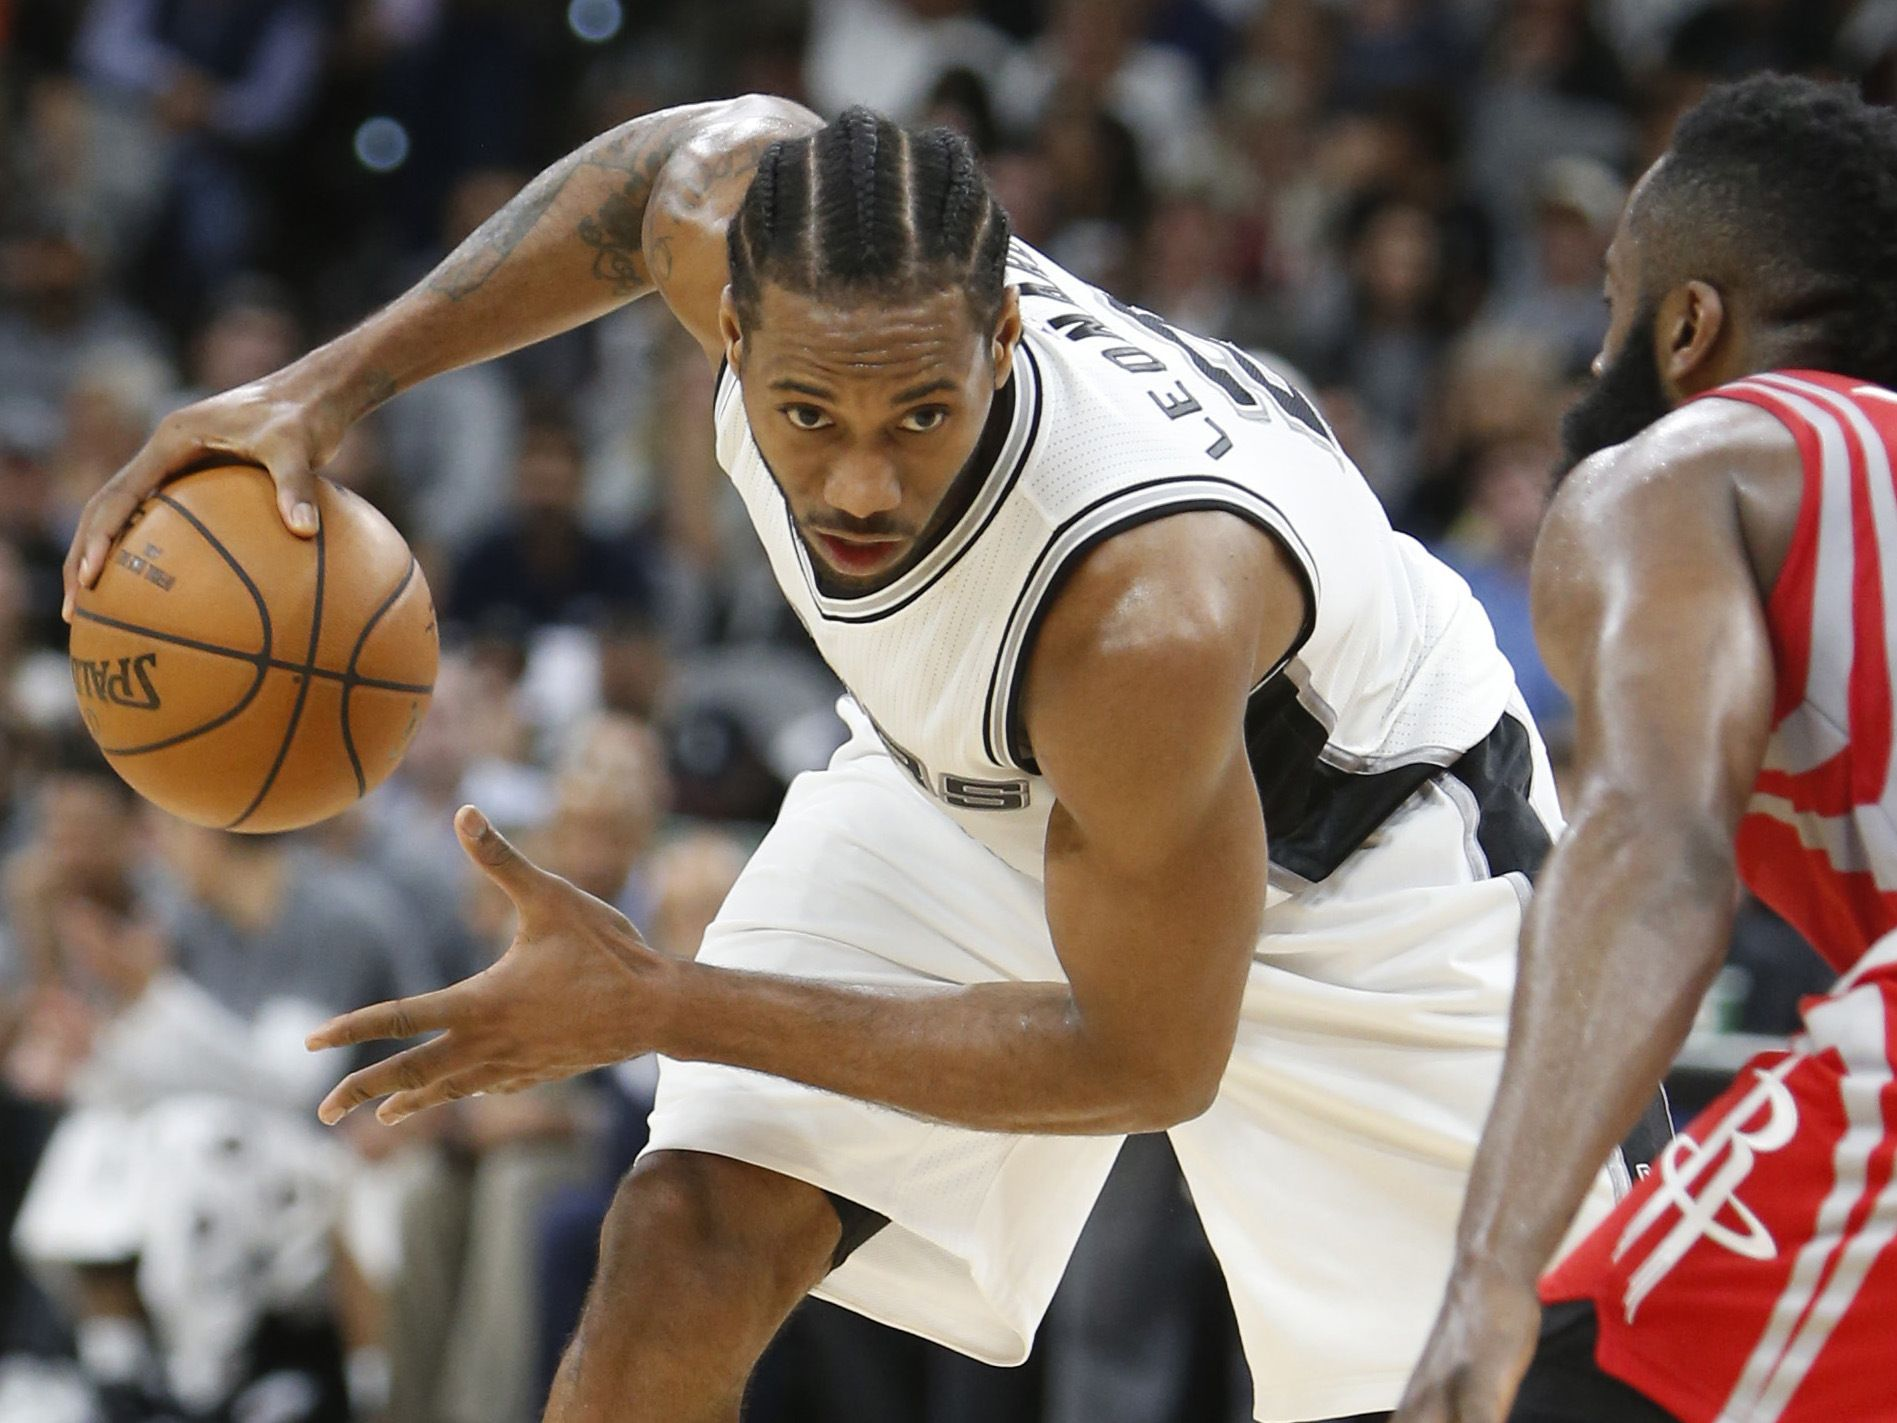 SanAntonioSpurs Look where his other hand is! He's palming the basketball #9ine | Streaming movies online, Streaming movies free, Streaming movies